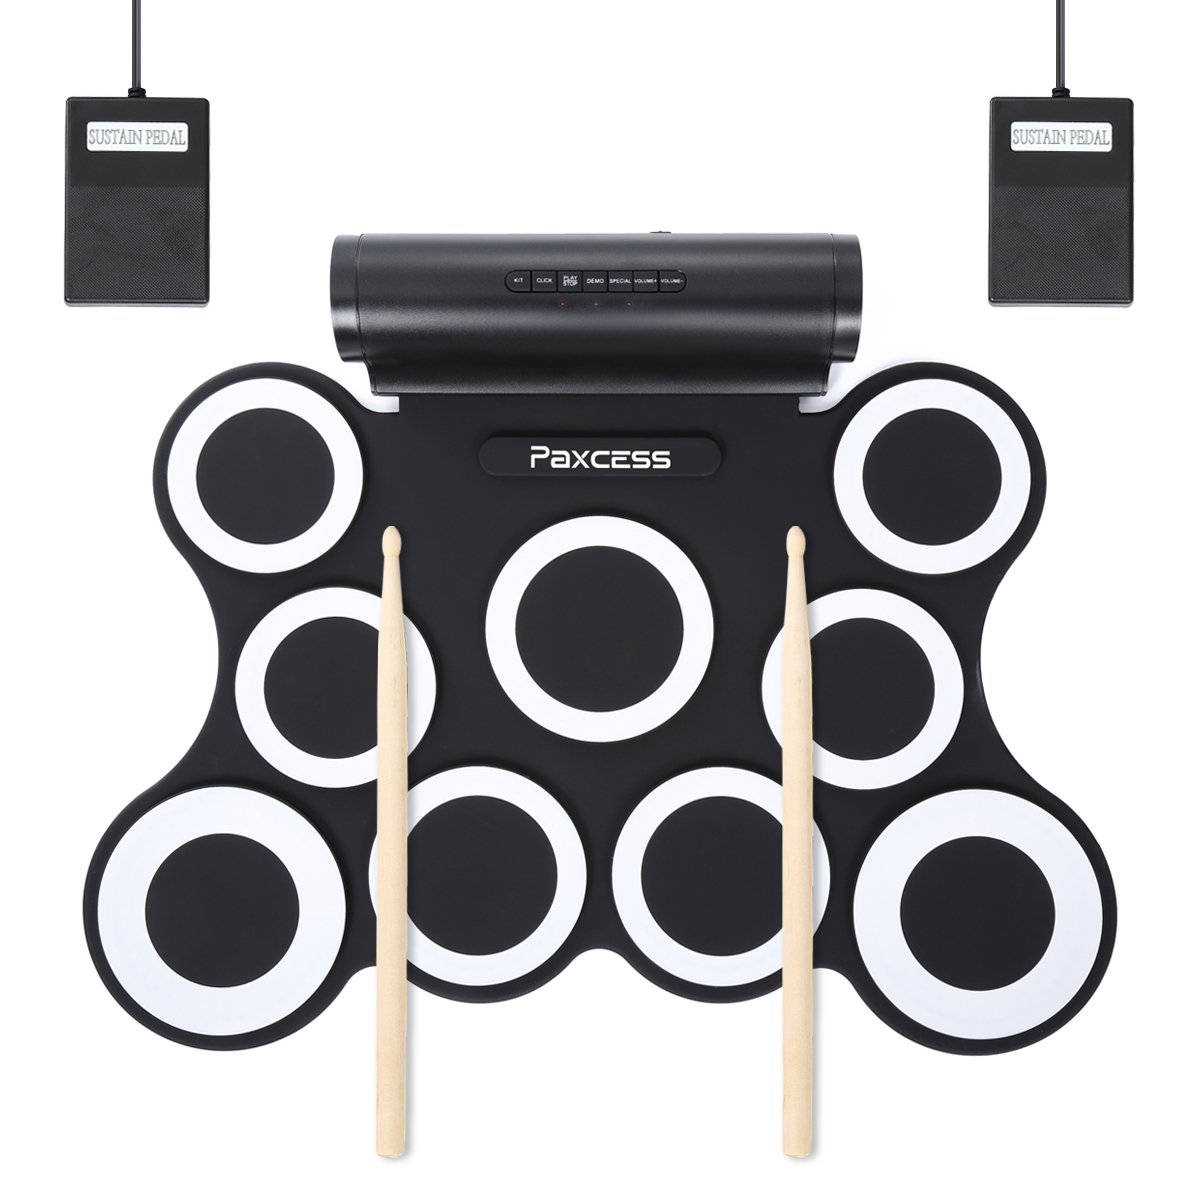 PAXCESS Electronic Drum Set, 9 Pads Electric Drum Set with Headphone Jack, Built in Speaker and Battery, Drum Stick, Foot Pedals, Best Gift for Christmas Holiday Birthday by PAXCESS (Image #1)